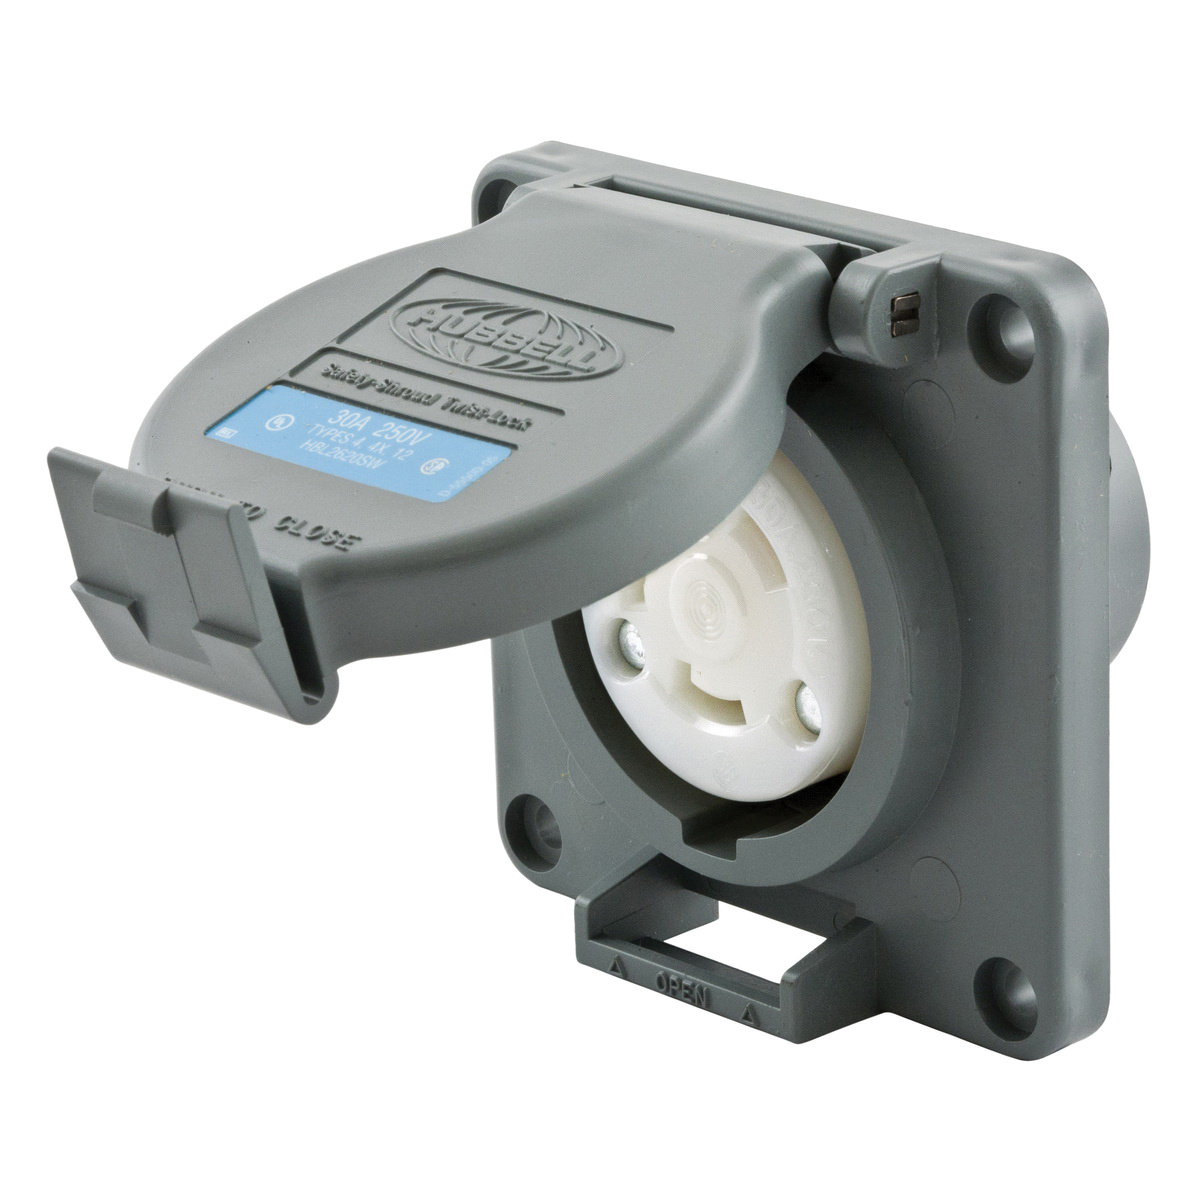 hight resolution of hubbell wiring hbl2620sw industrial grade watertight locking receptacle 30 amp 250 volt ac